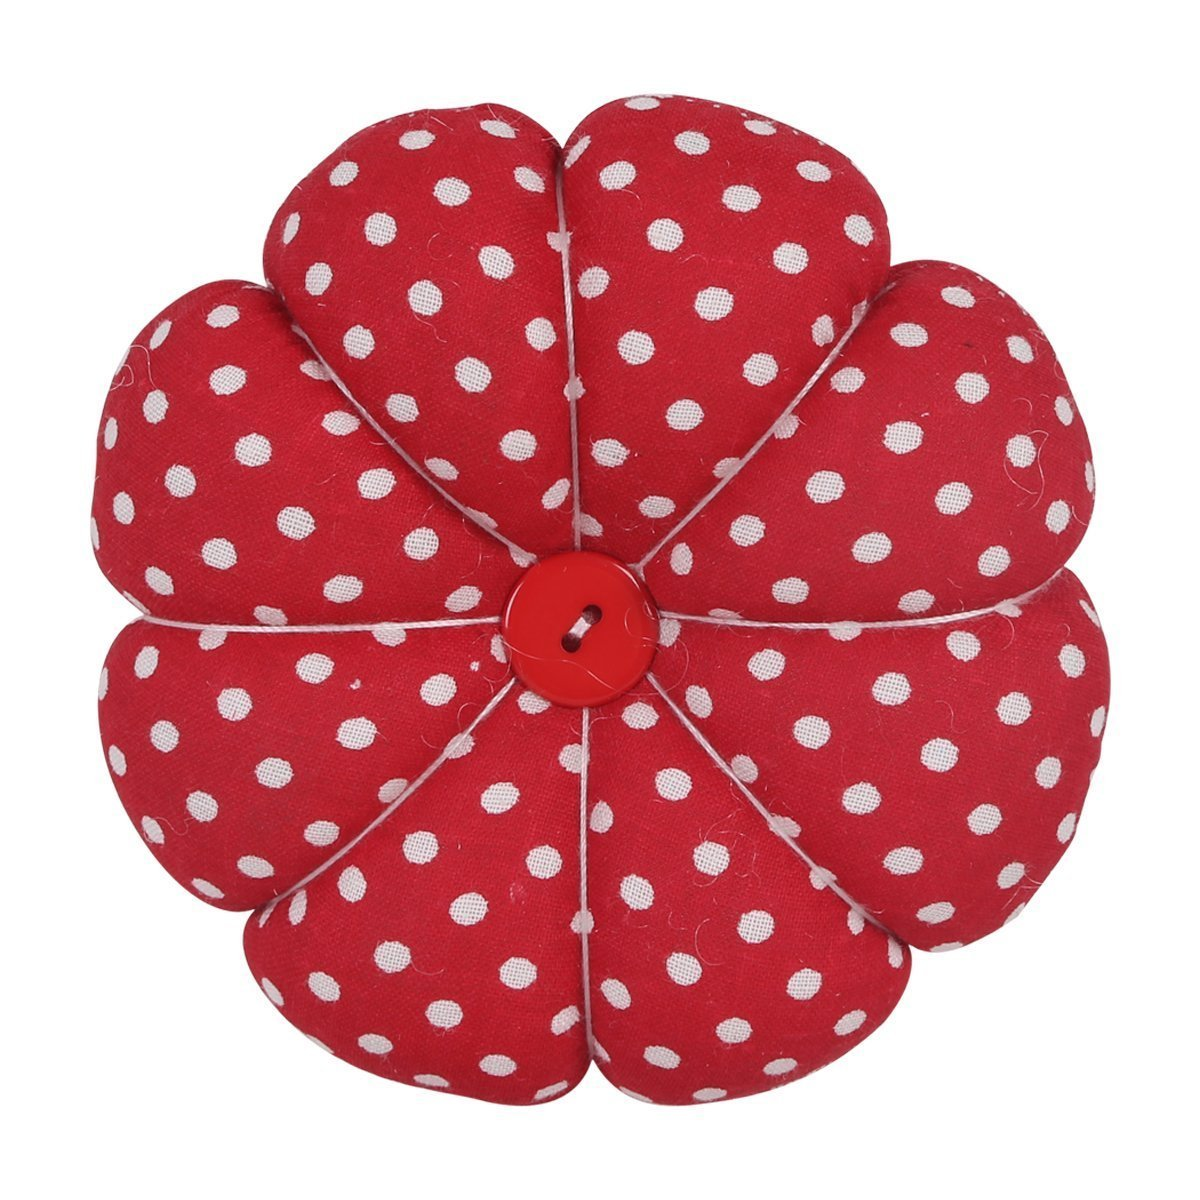 Payviva Handcrafts Pumpkin Pin Cushion Stick Sewing Cute 2 red dot